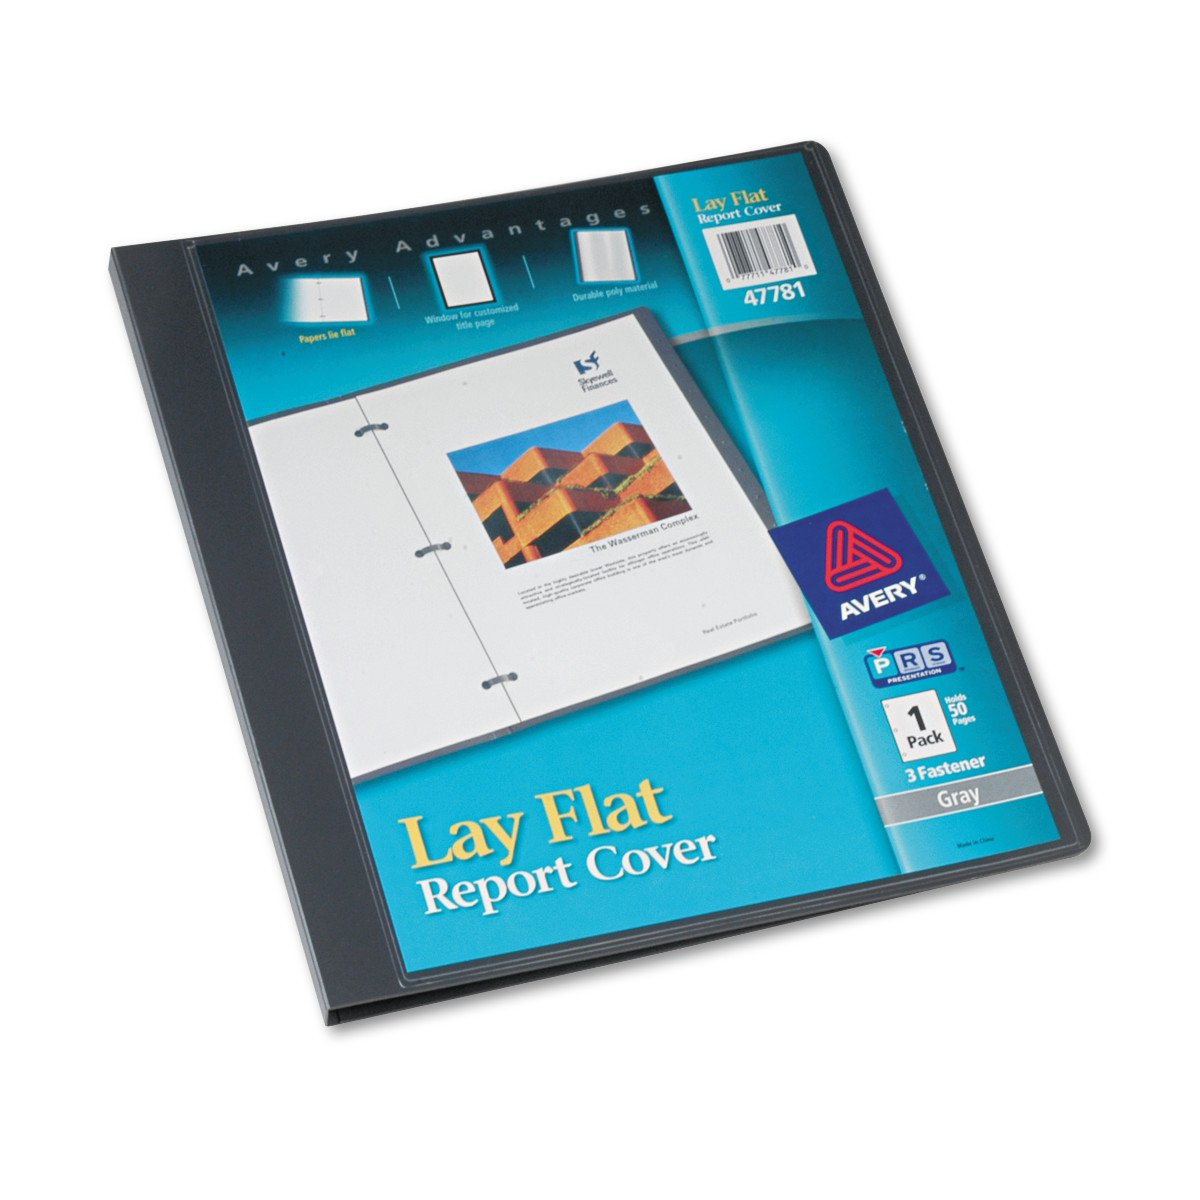 Avery Lay Flat Report Cover, Gray, 1 Cover (47781)